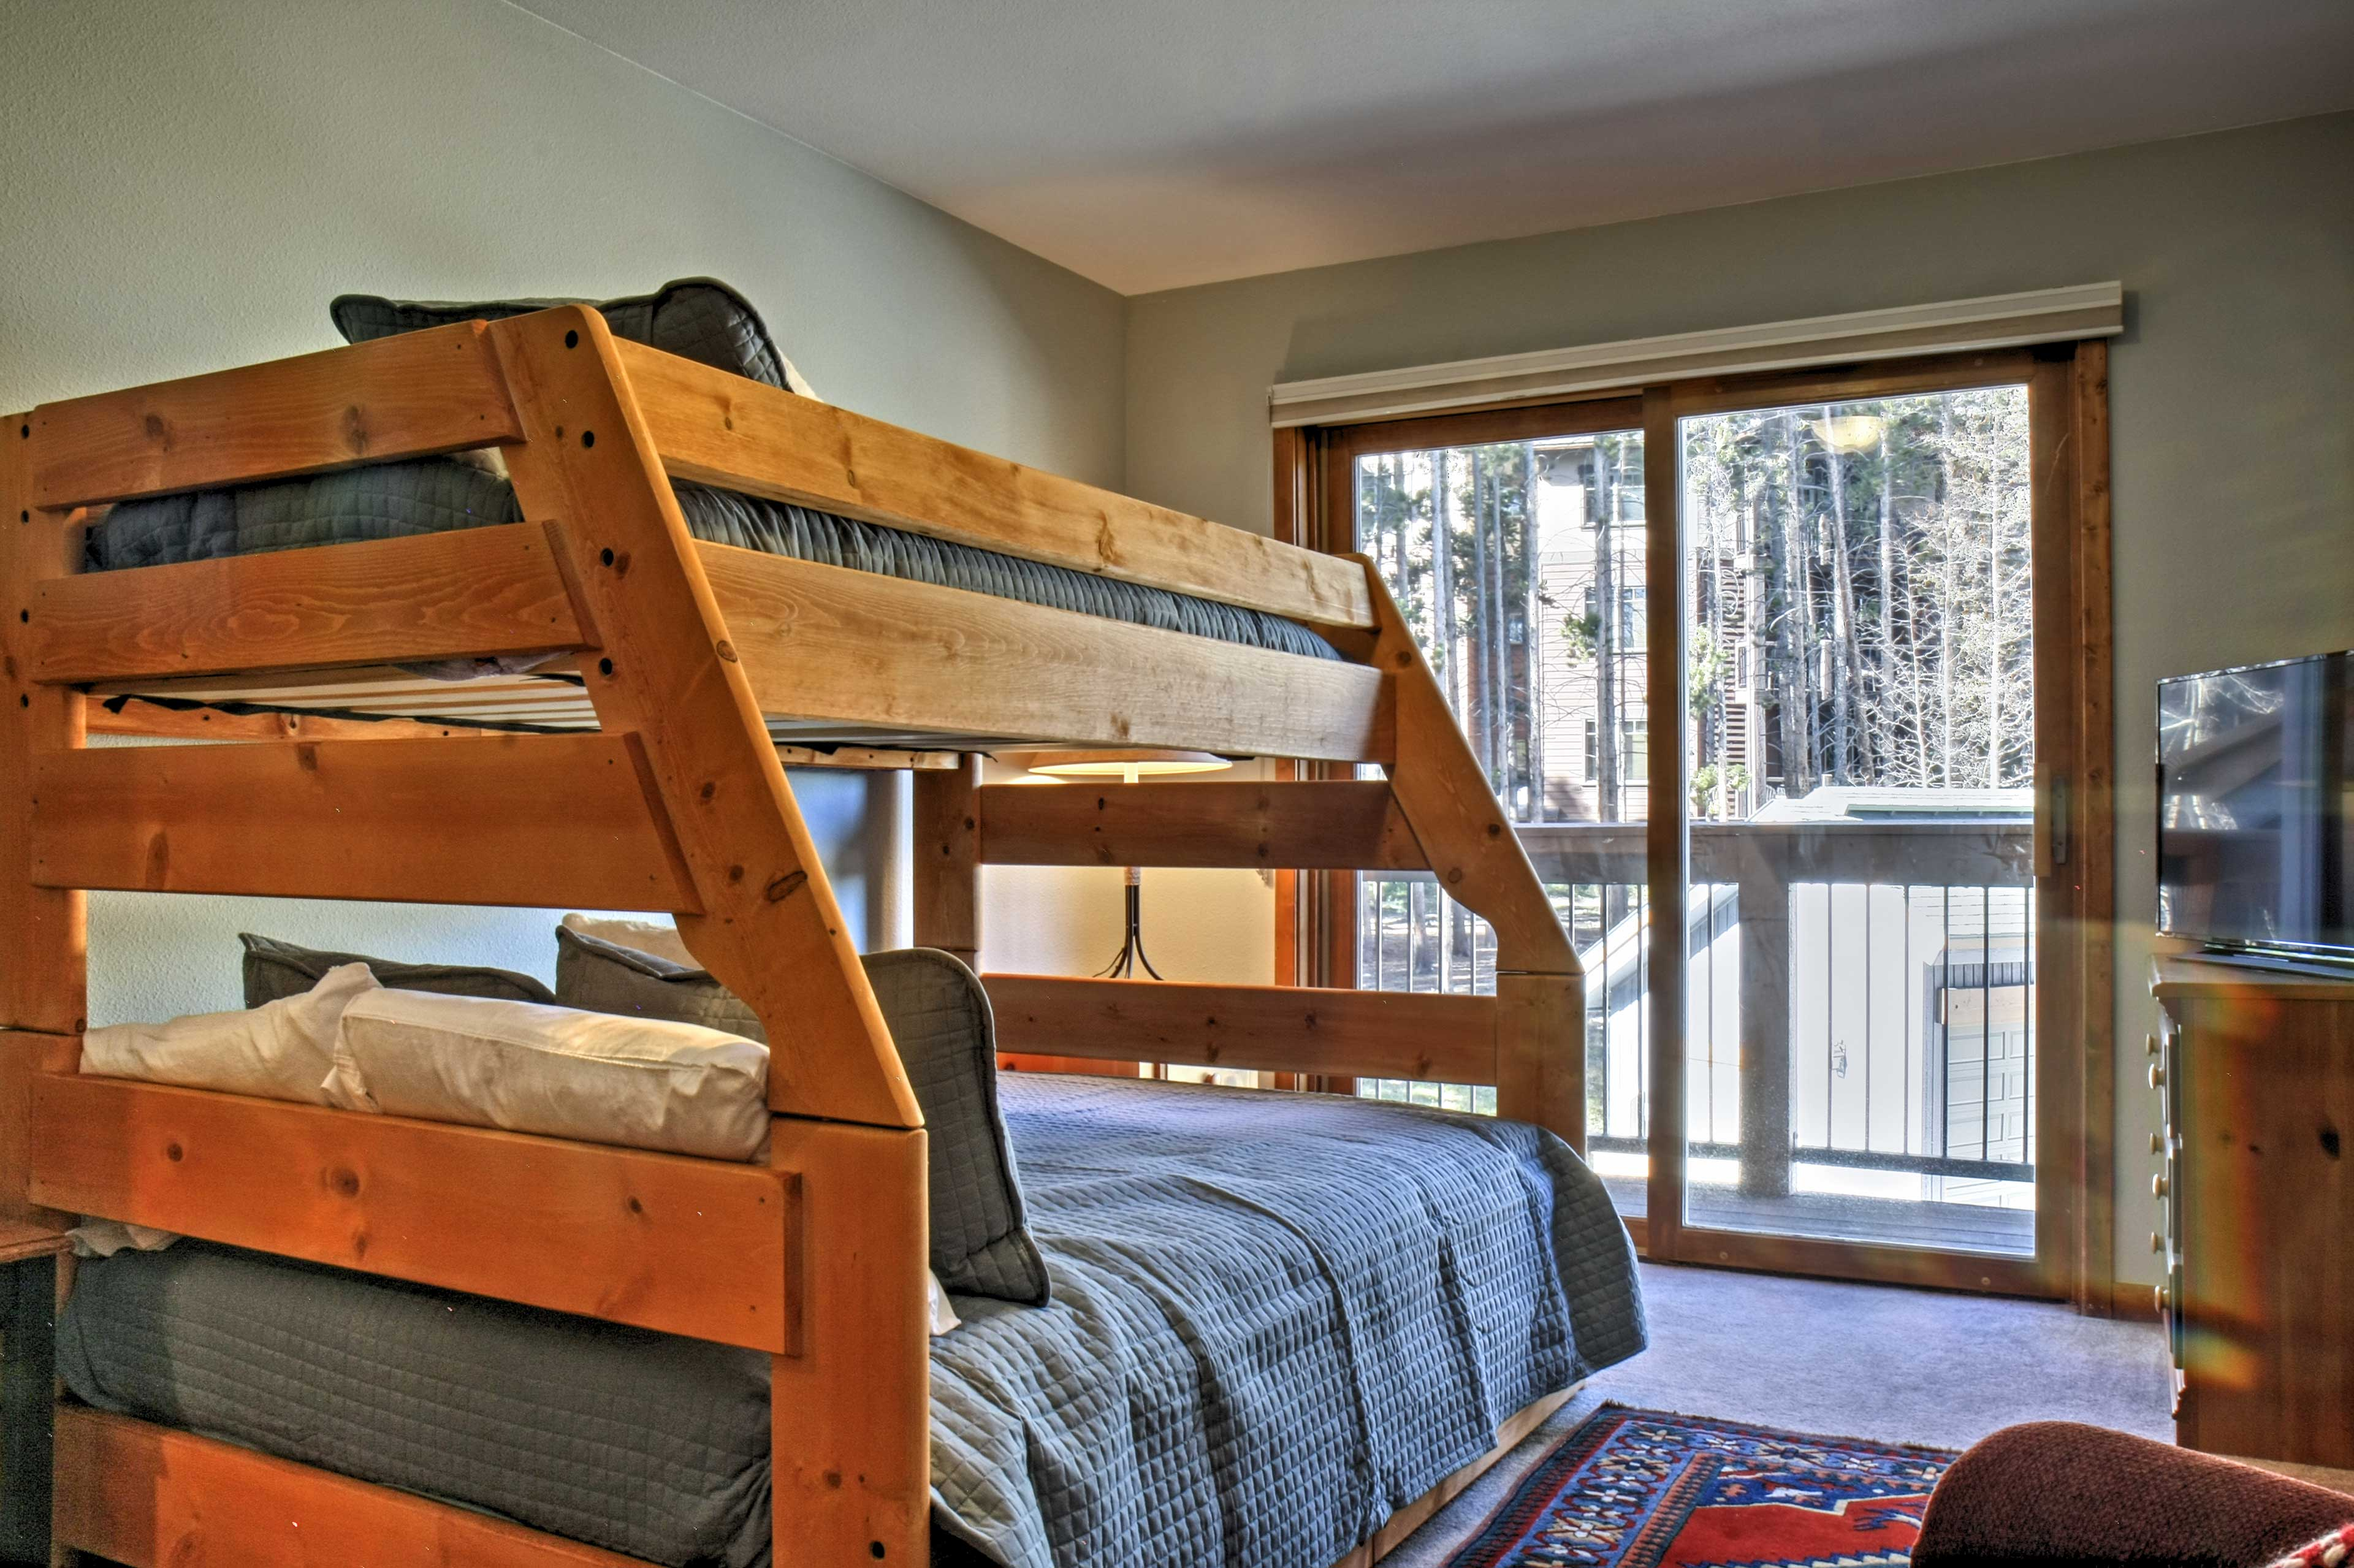 Bedroom 3 boasts earthy decor and a private balcony with mountain views.